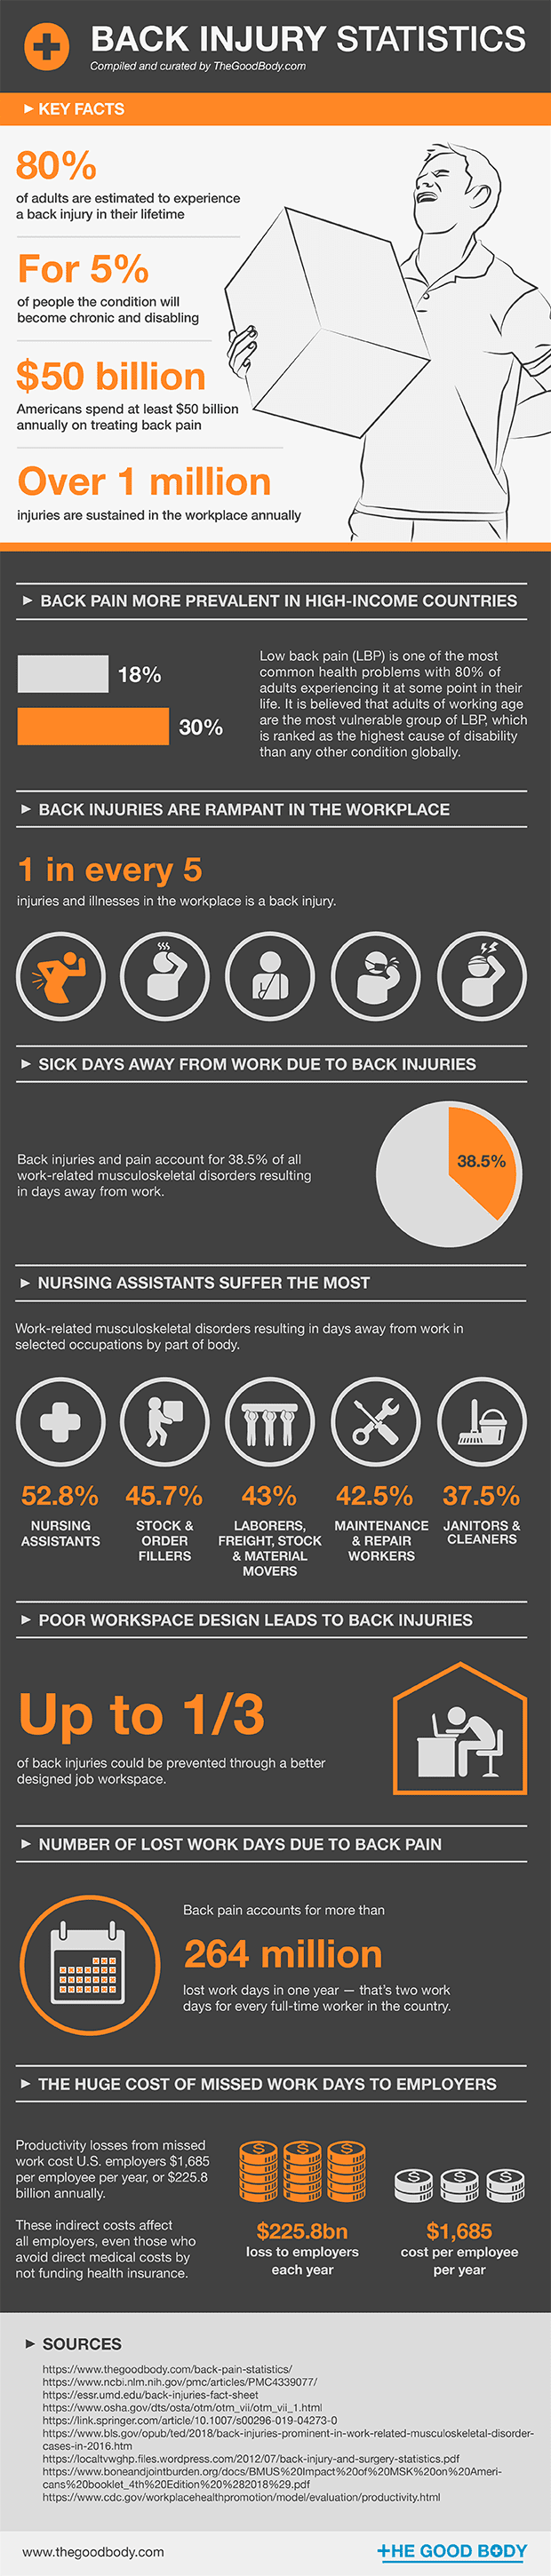 Back Injury Statistics - infographic